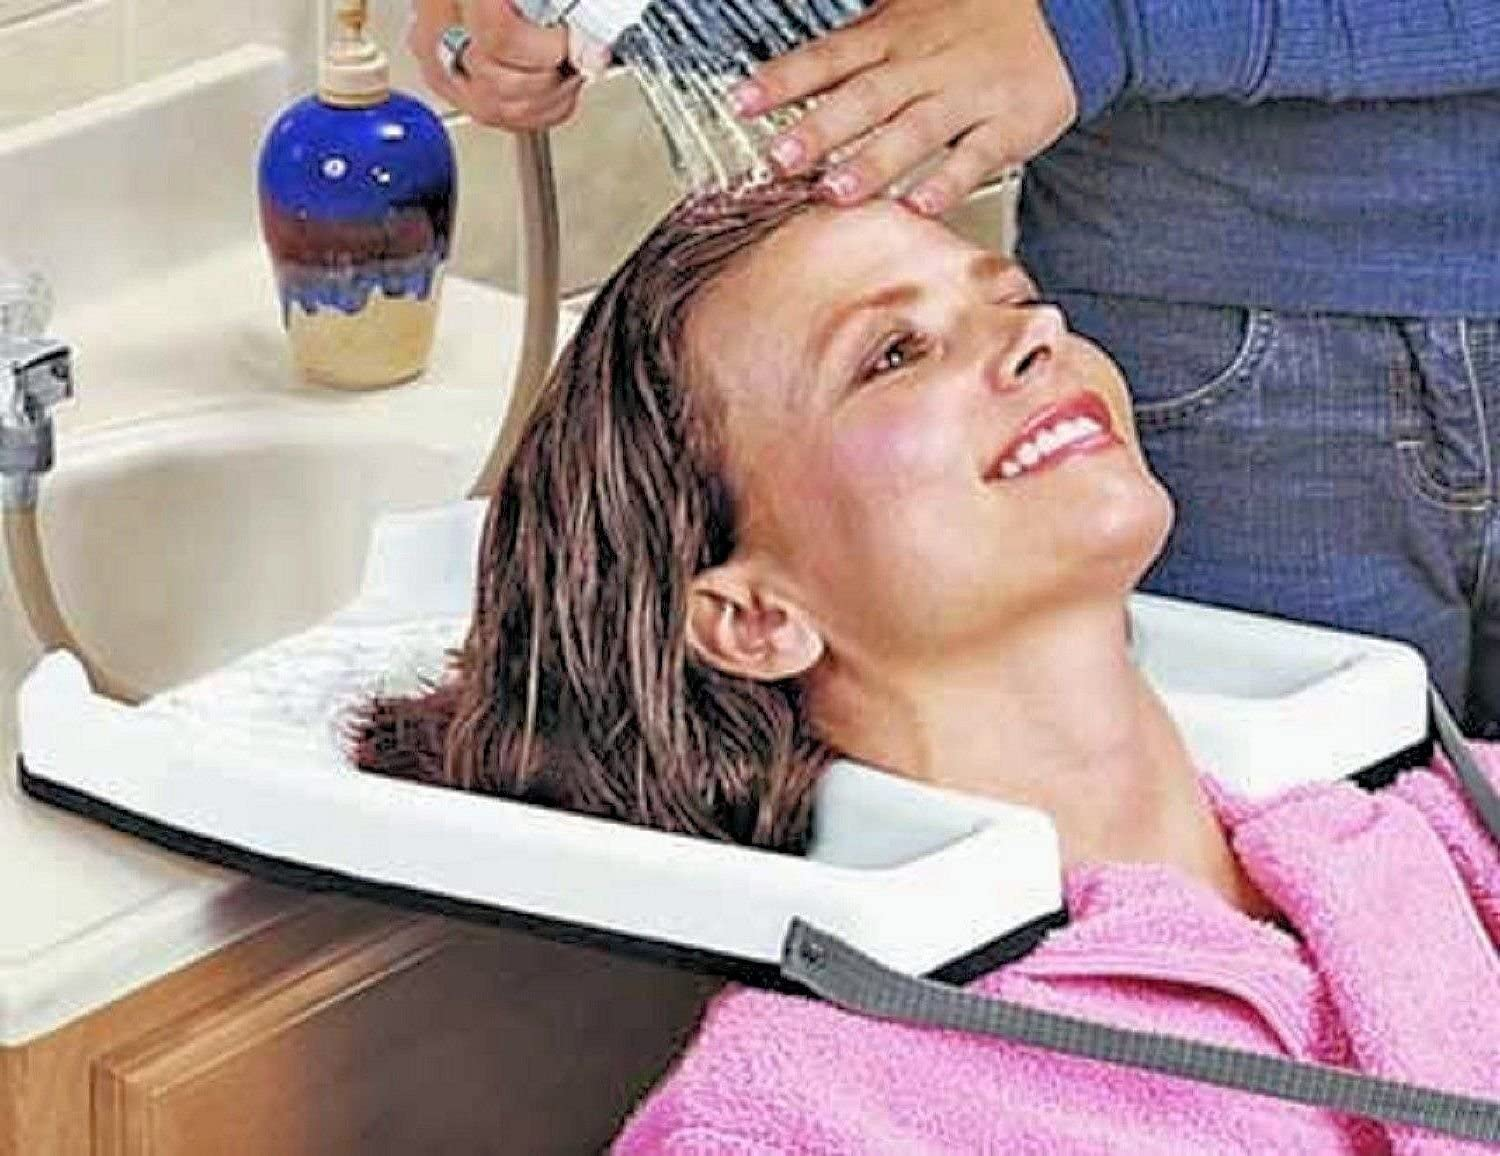 Safety Contoured portable salon home Shampoo hair washing sink tub tray Medical